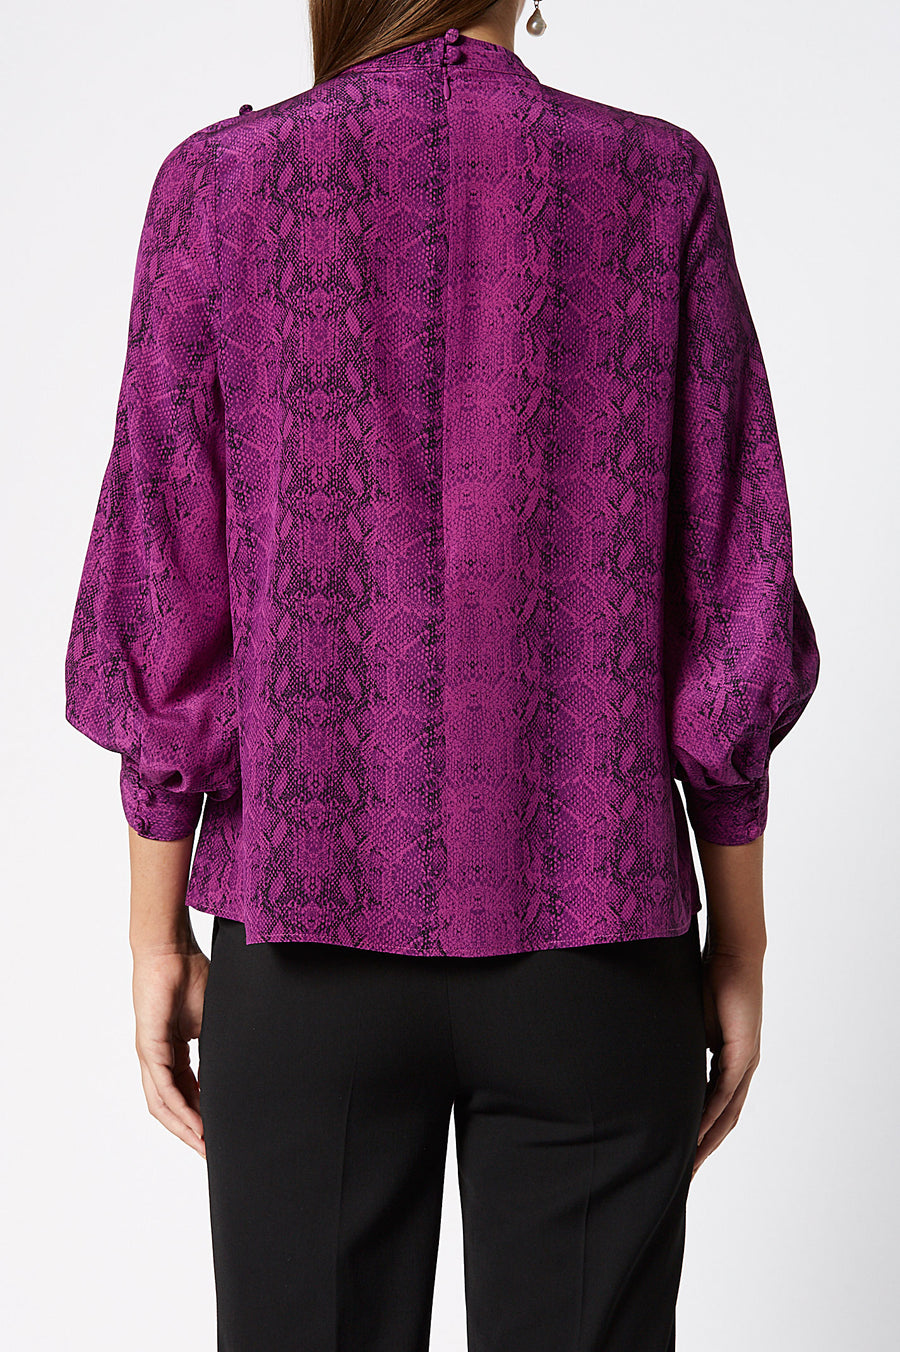 CDC Reptile Button Shoulder Blouse, detailed shoulders, rouched neckline, 3/4 Sleeves, Color Violet